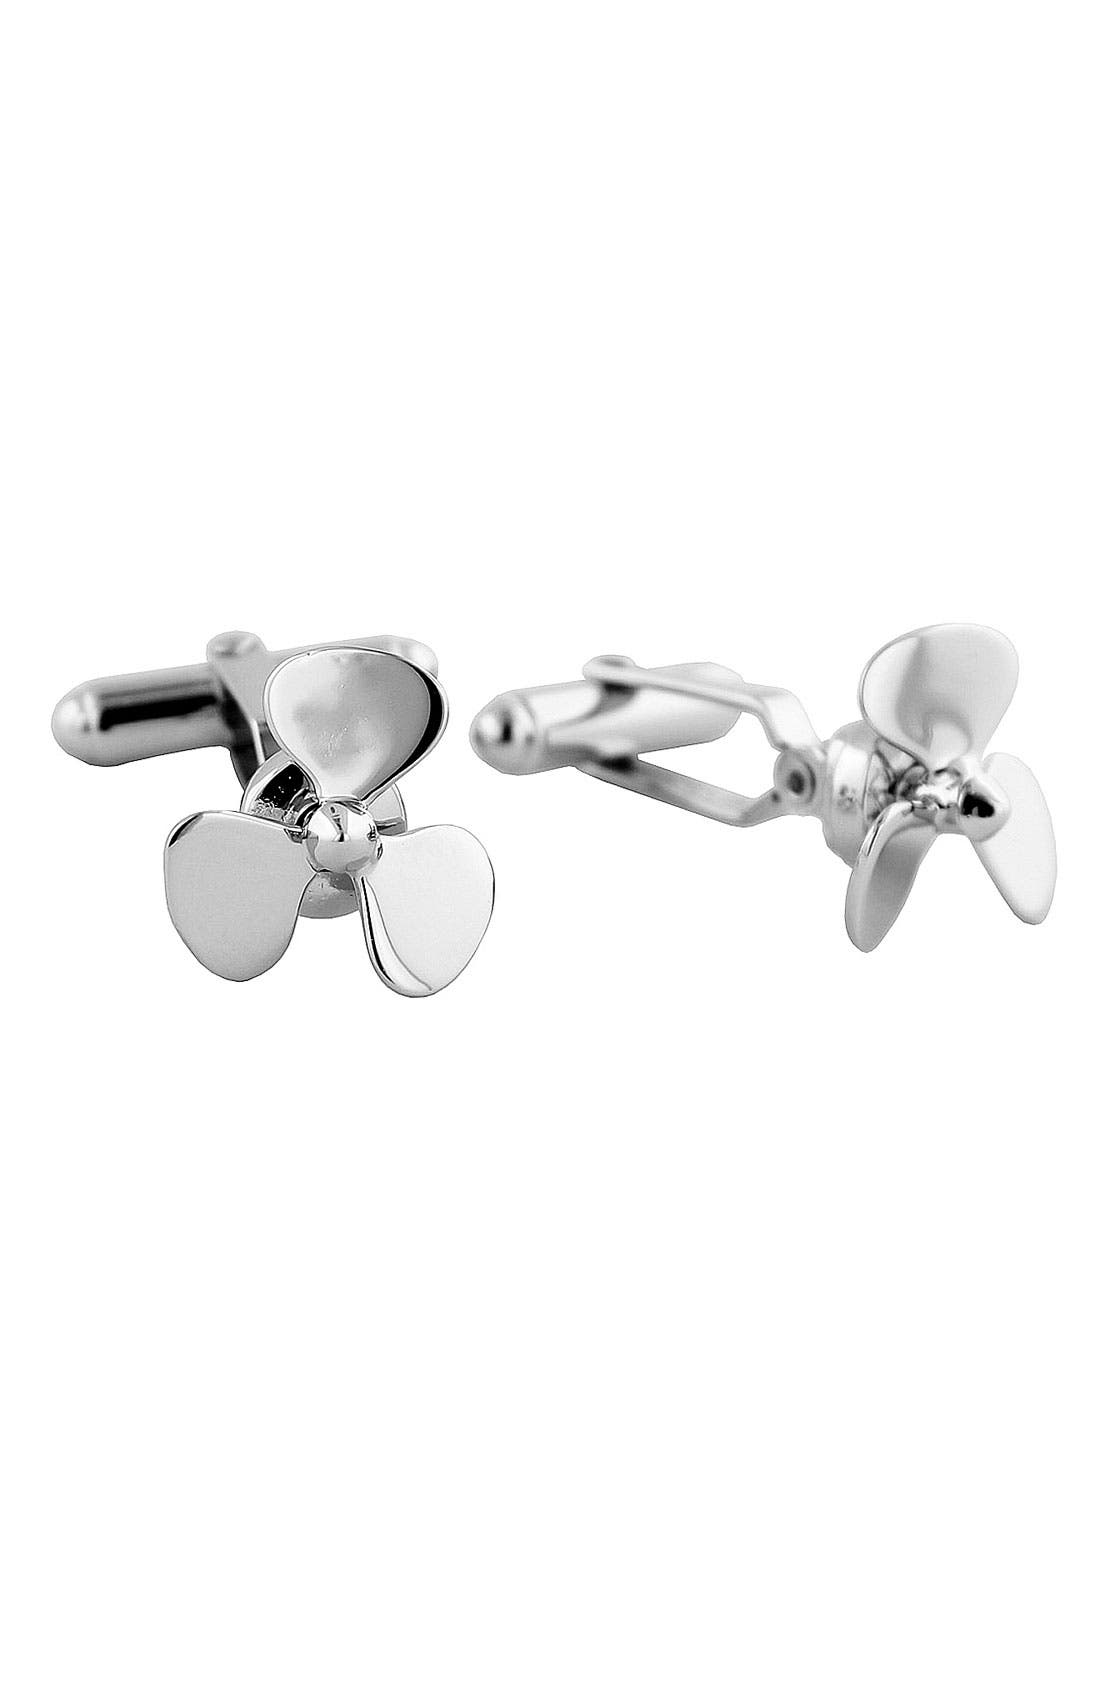 'Propeller' Cuff Links,                         Main,                         color,